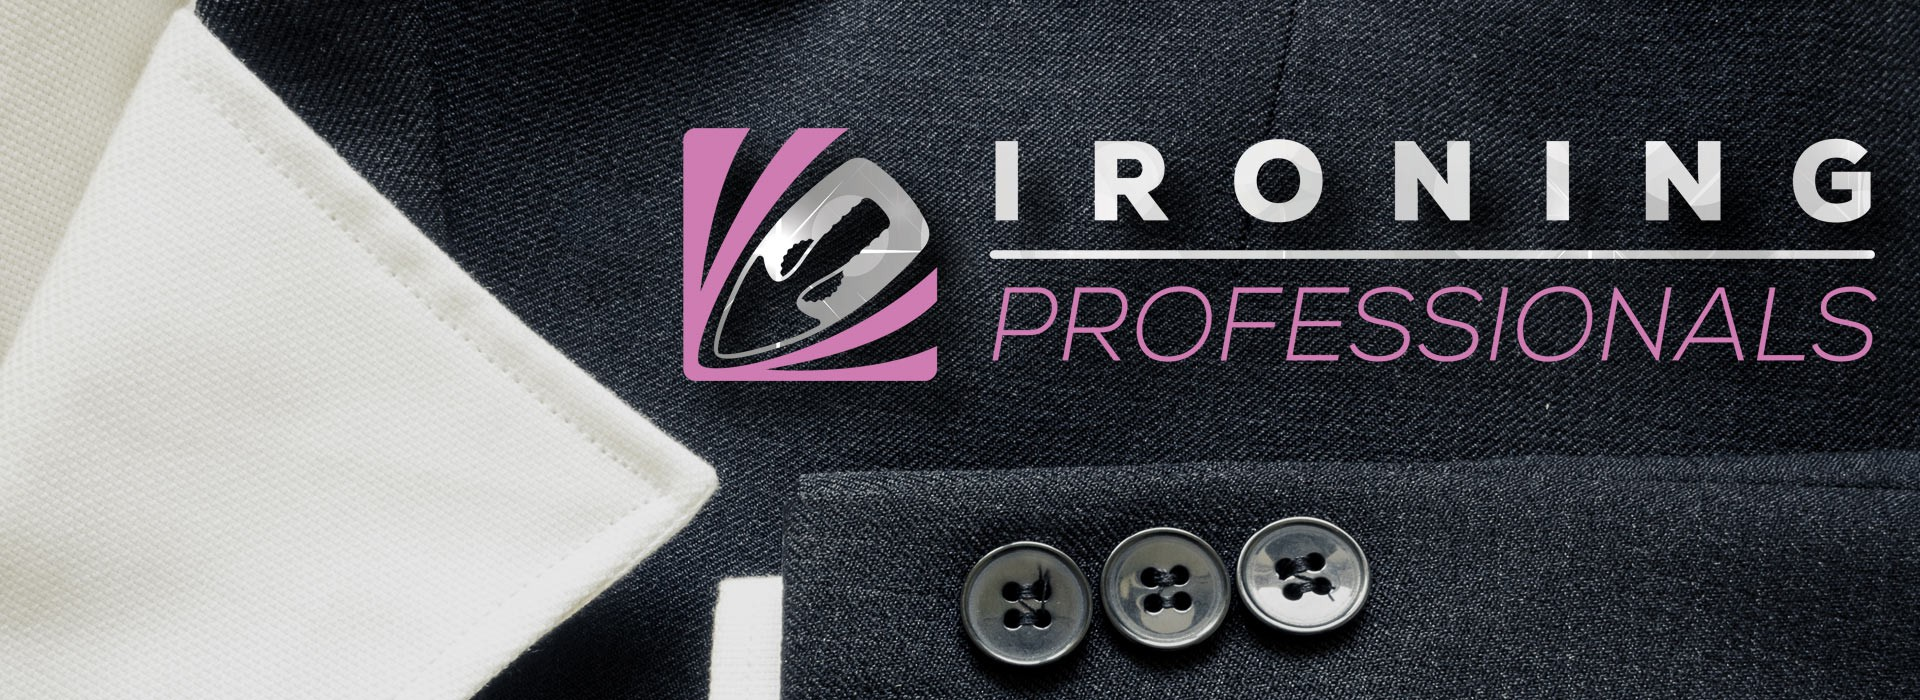 Professional standard ironing service based in Horwich and serving the wider area